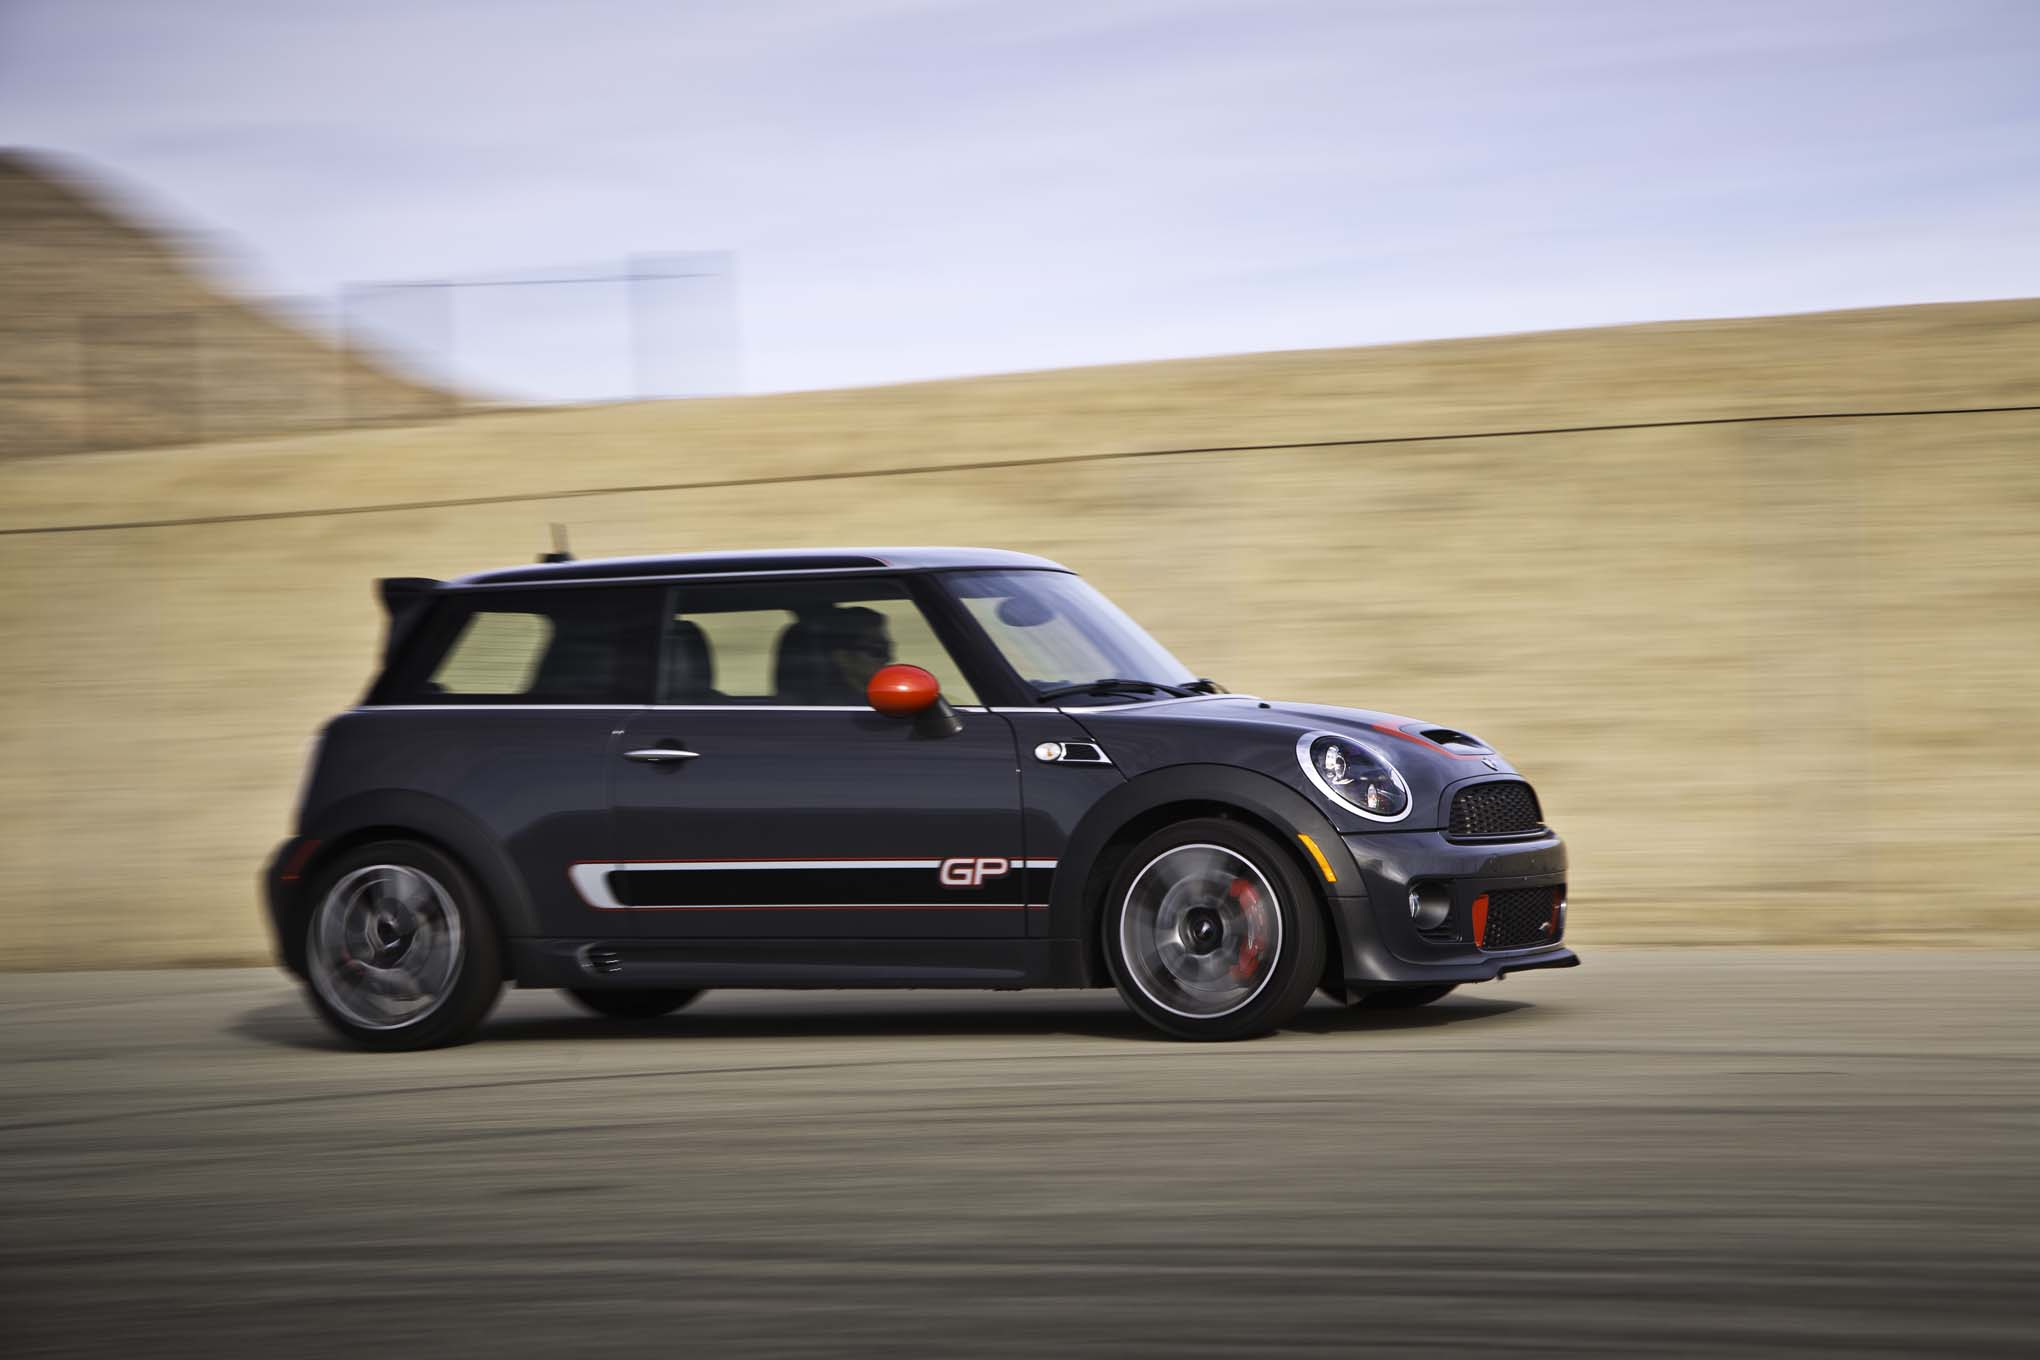 2013 Mini John Cooper Works Gp First Test Motortrend